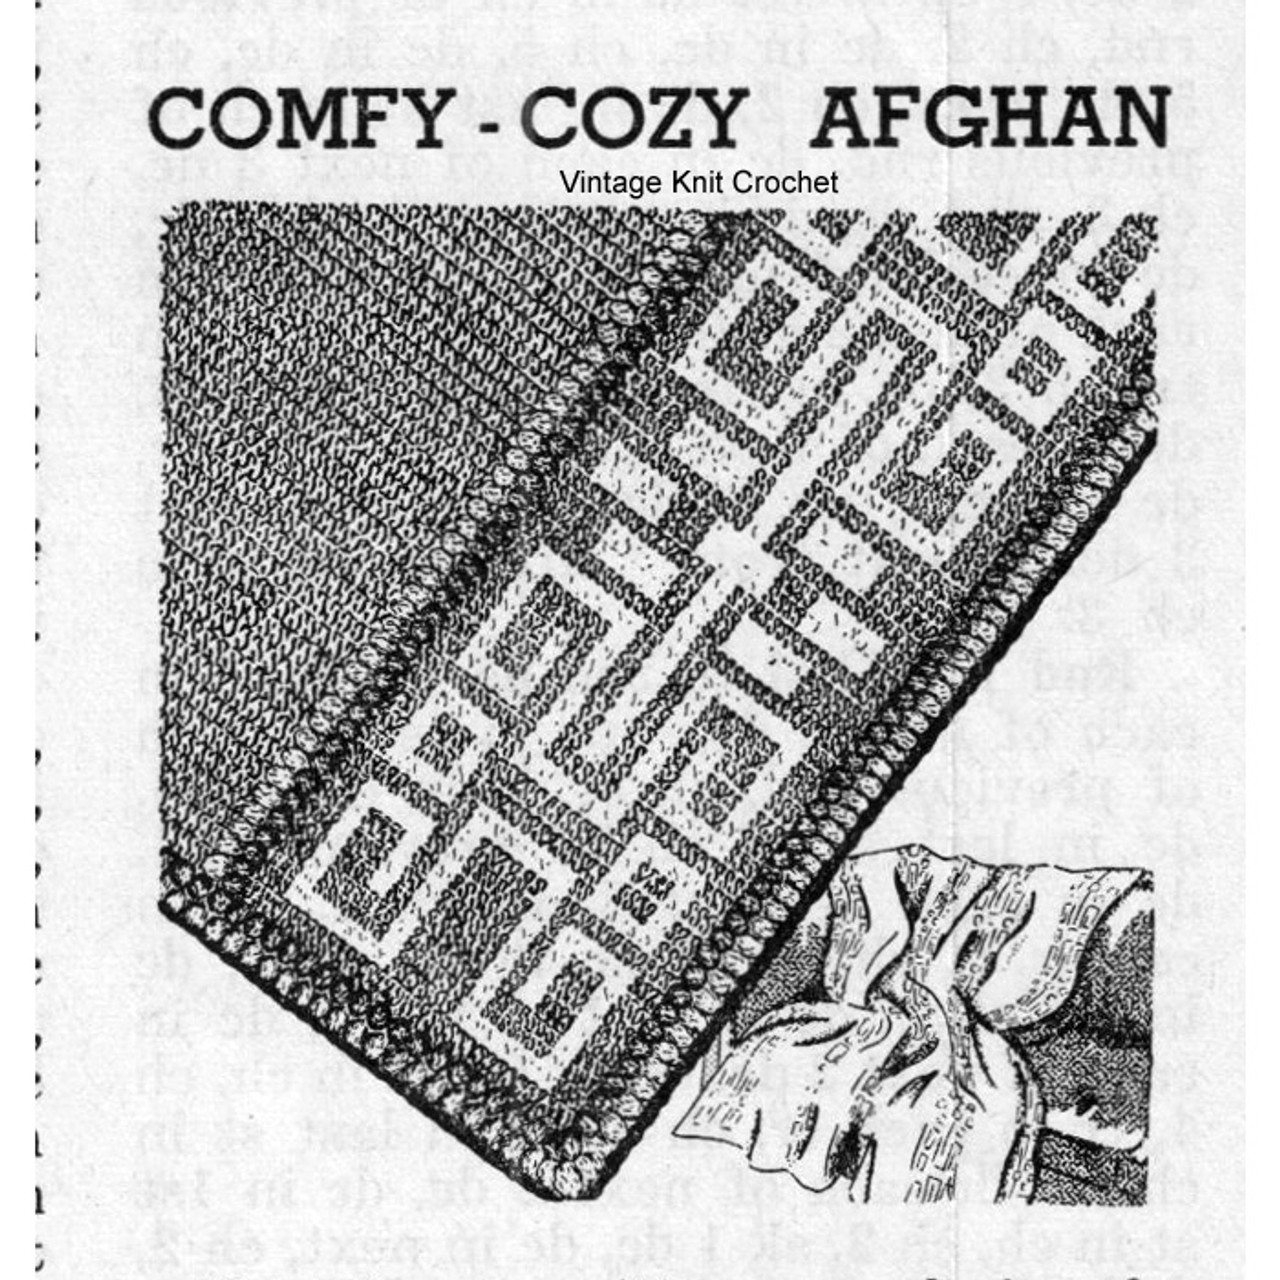 Crochet Greek Key Striped Afghan Pattern, Vintage 1940s